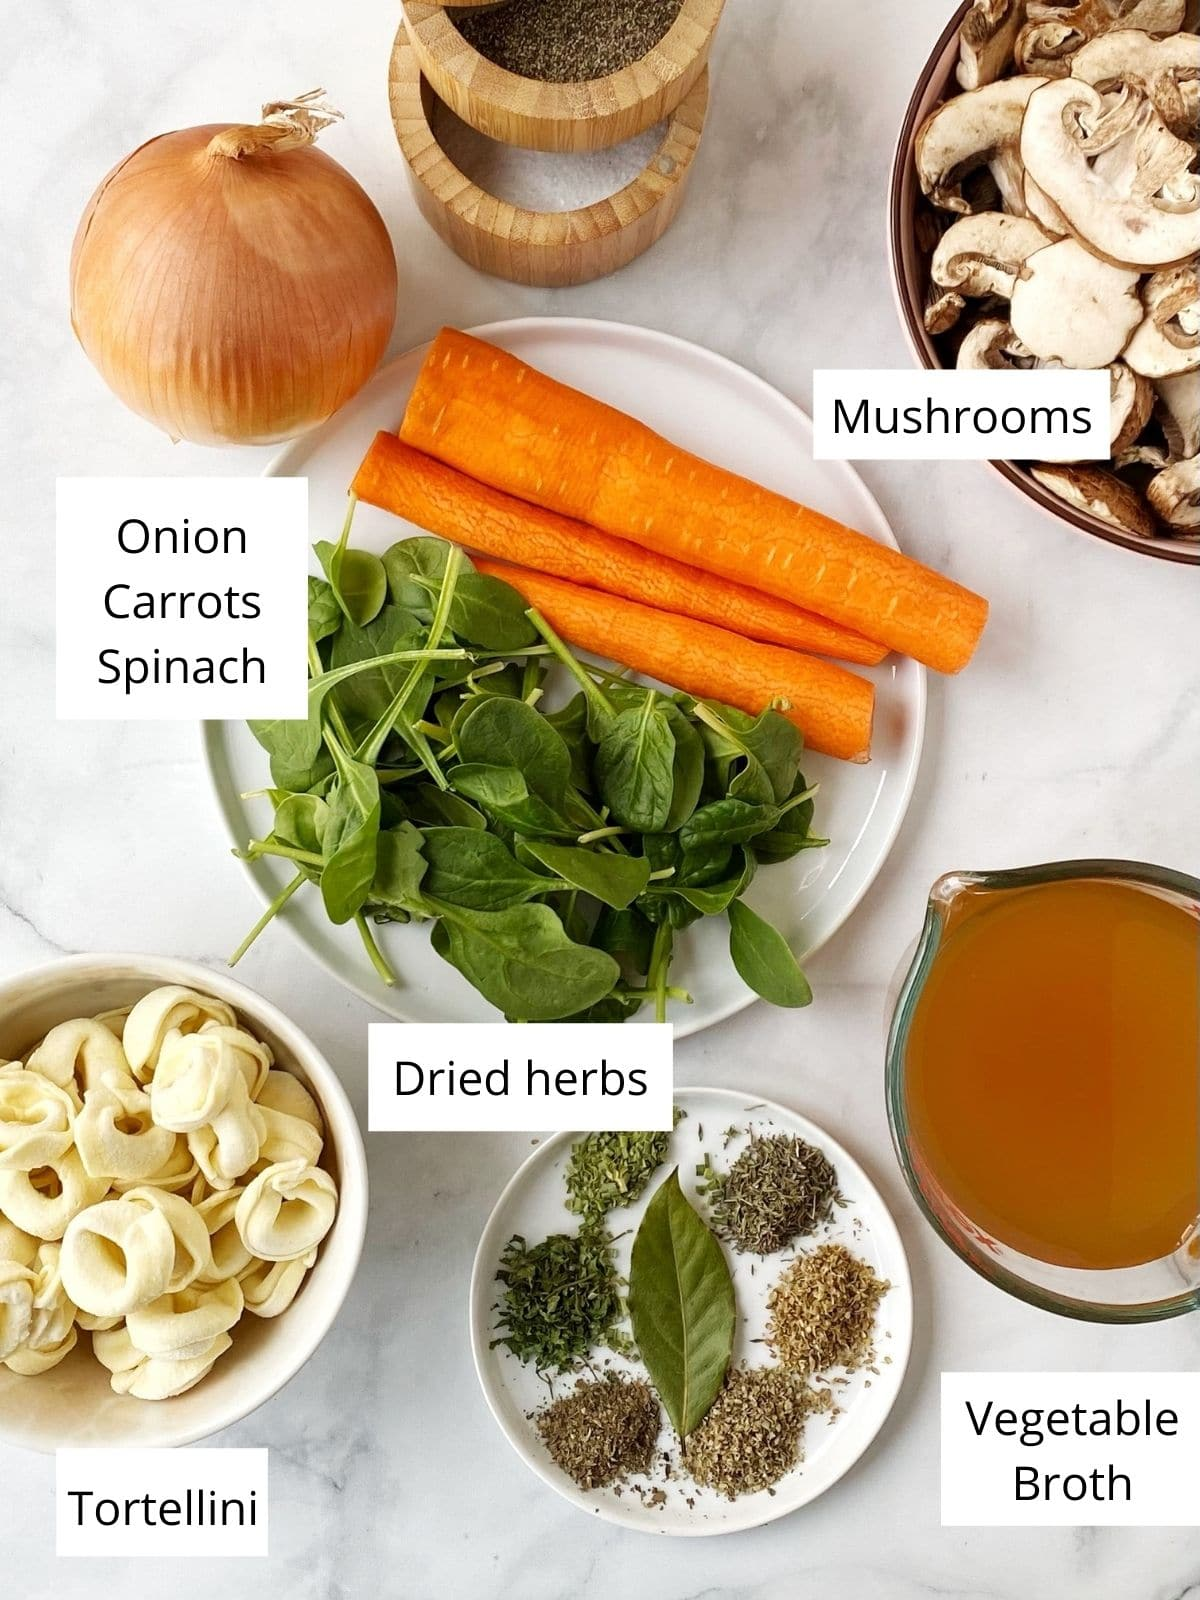 display of ingredients - carrots, onions, spinach, mushrooms, tortellini, herbs, broth